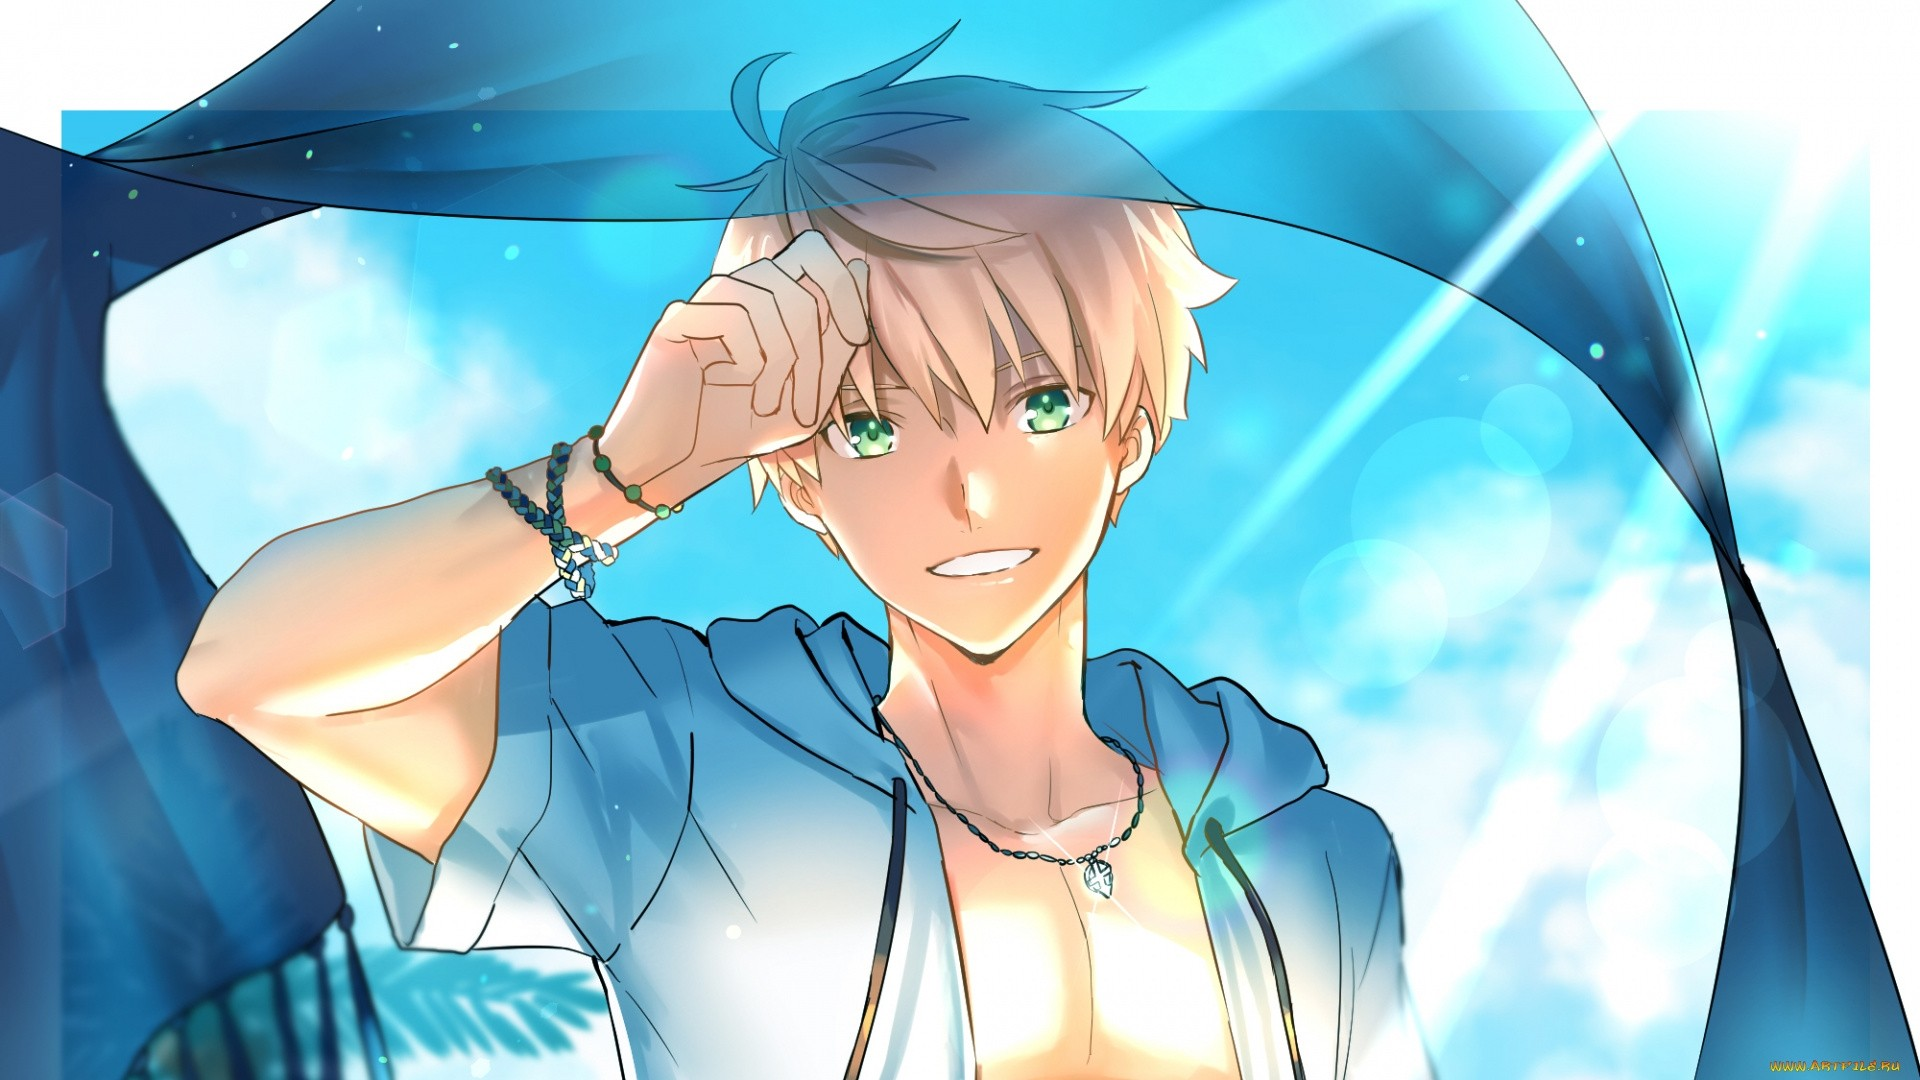 Handsome Anime Boy Wallpapers 26 Images Wallpaperboat